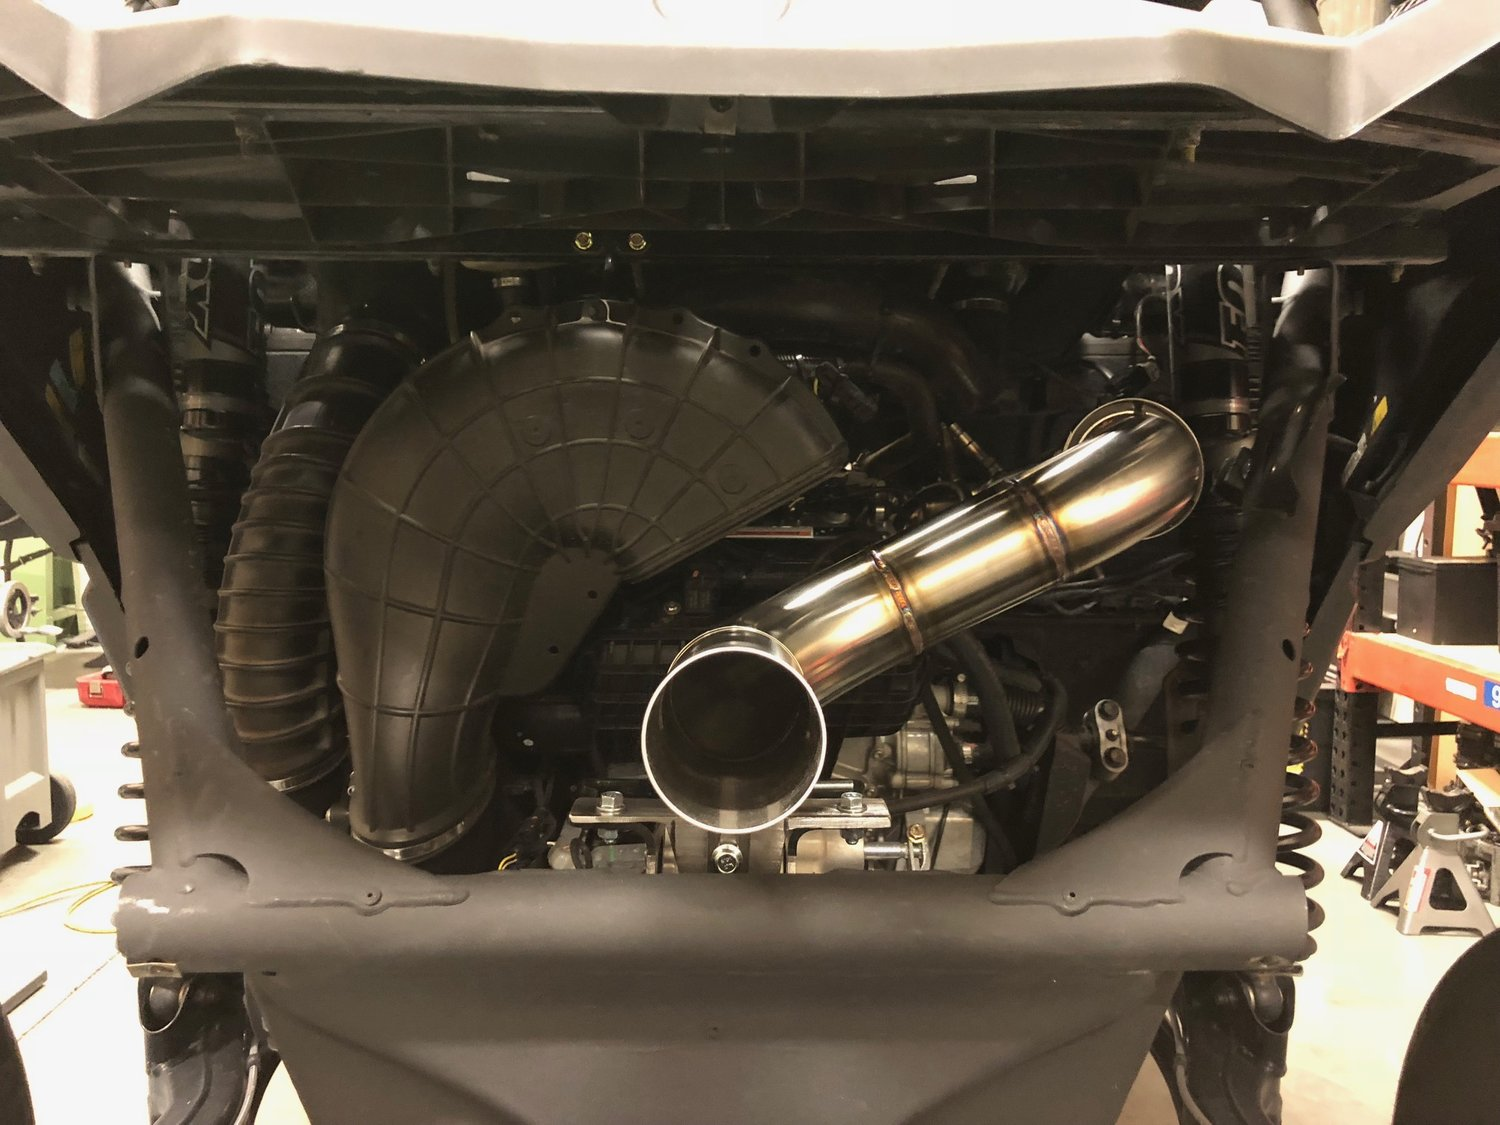 TREAL PERFORMANCE EXHAUST X3 STAGE 3 PERFORMANCE PACKAGE: RACE EXHAUST